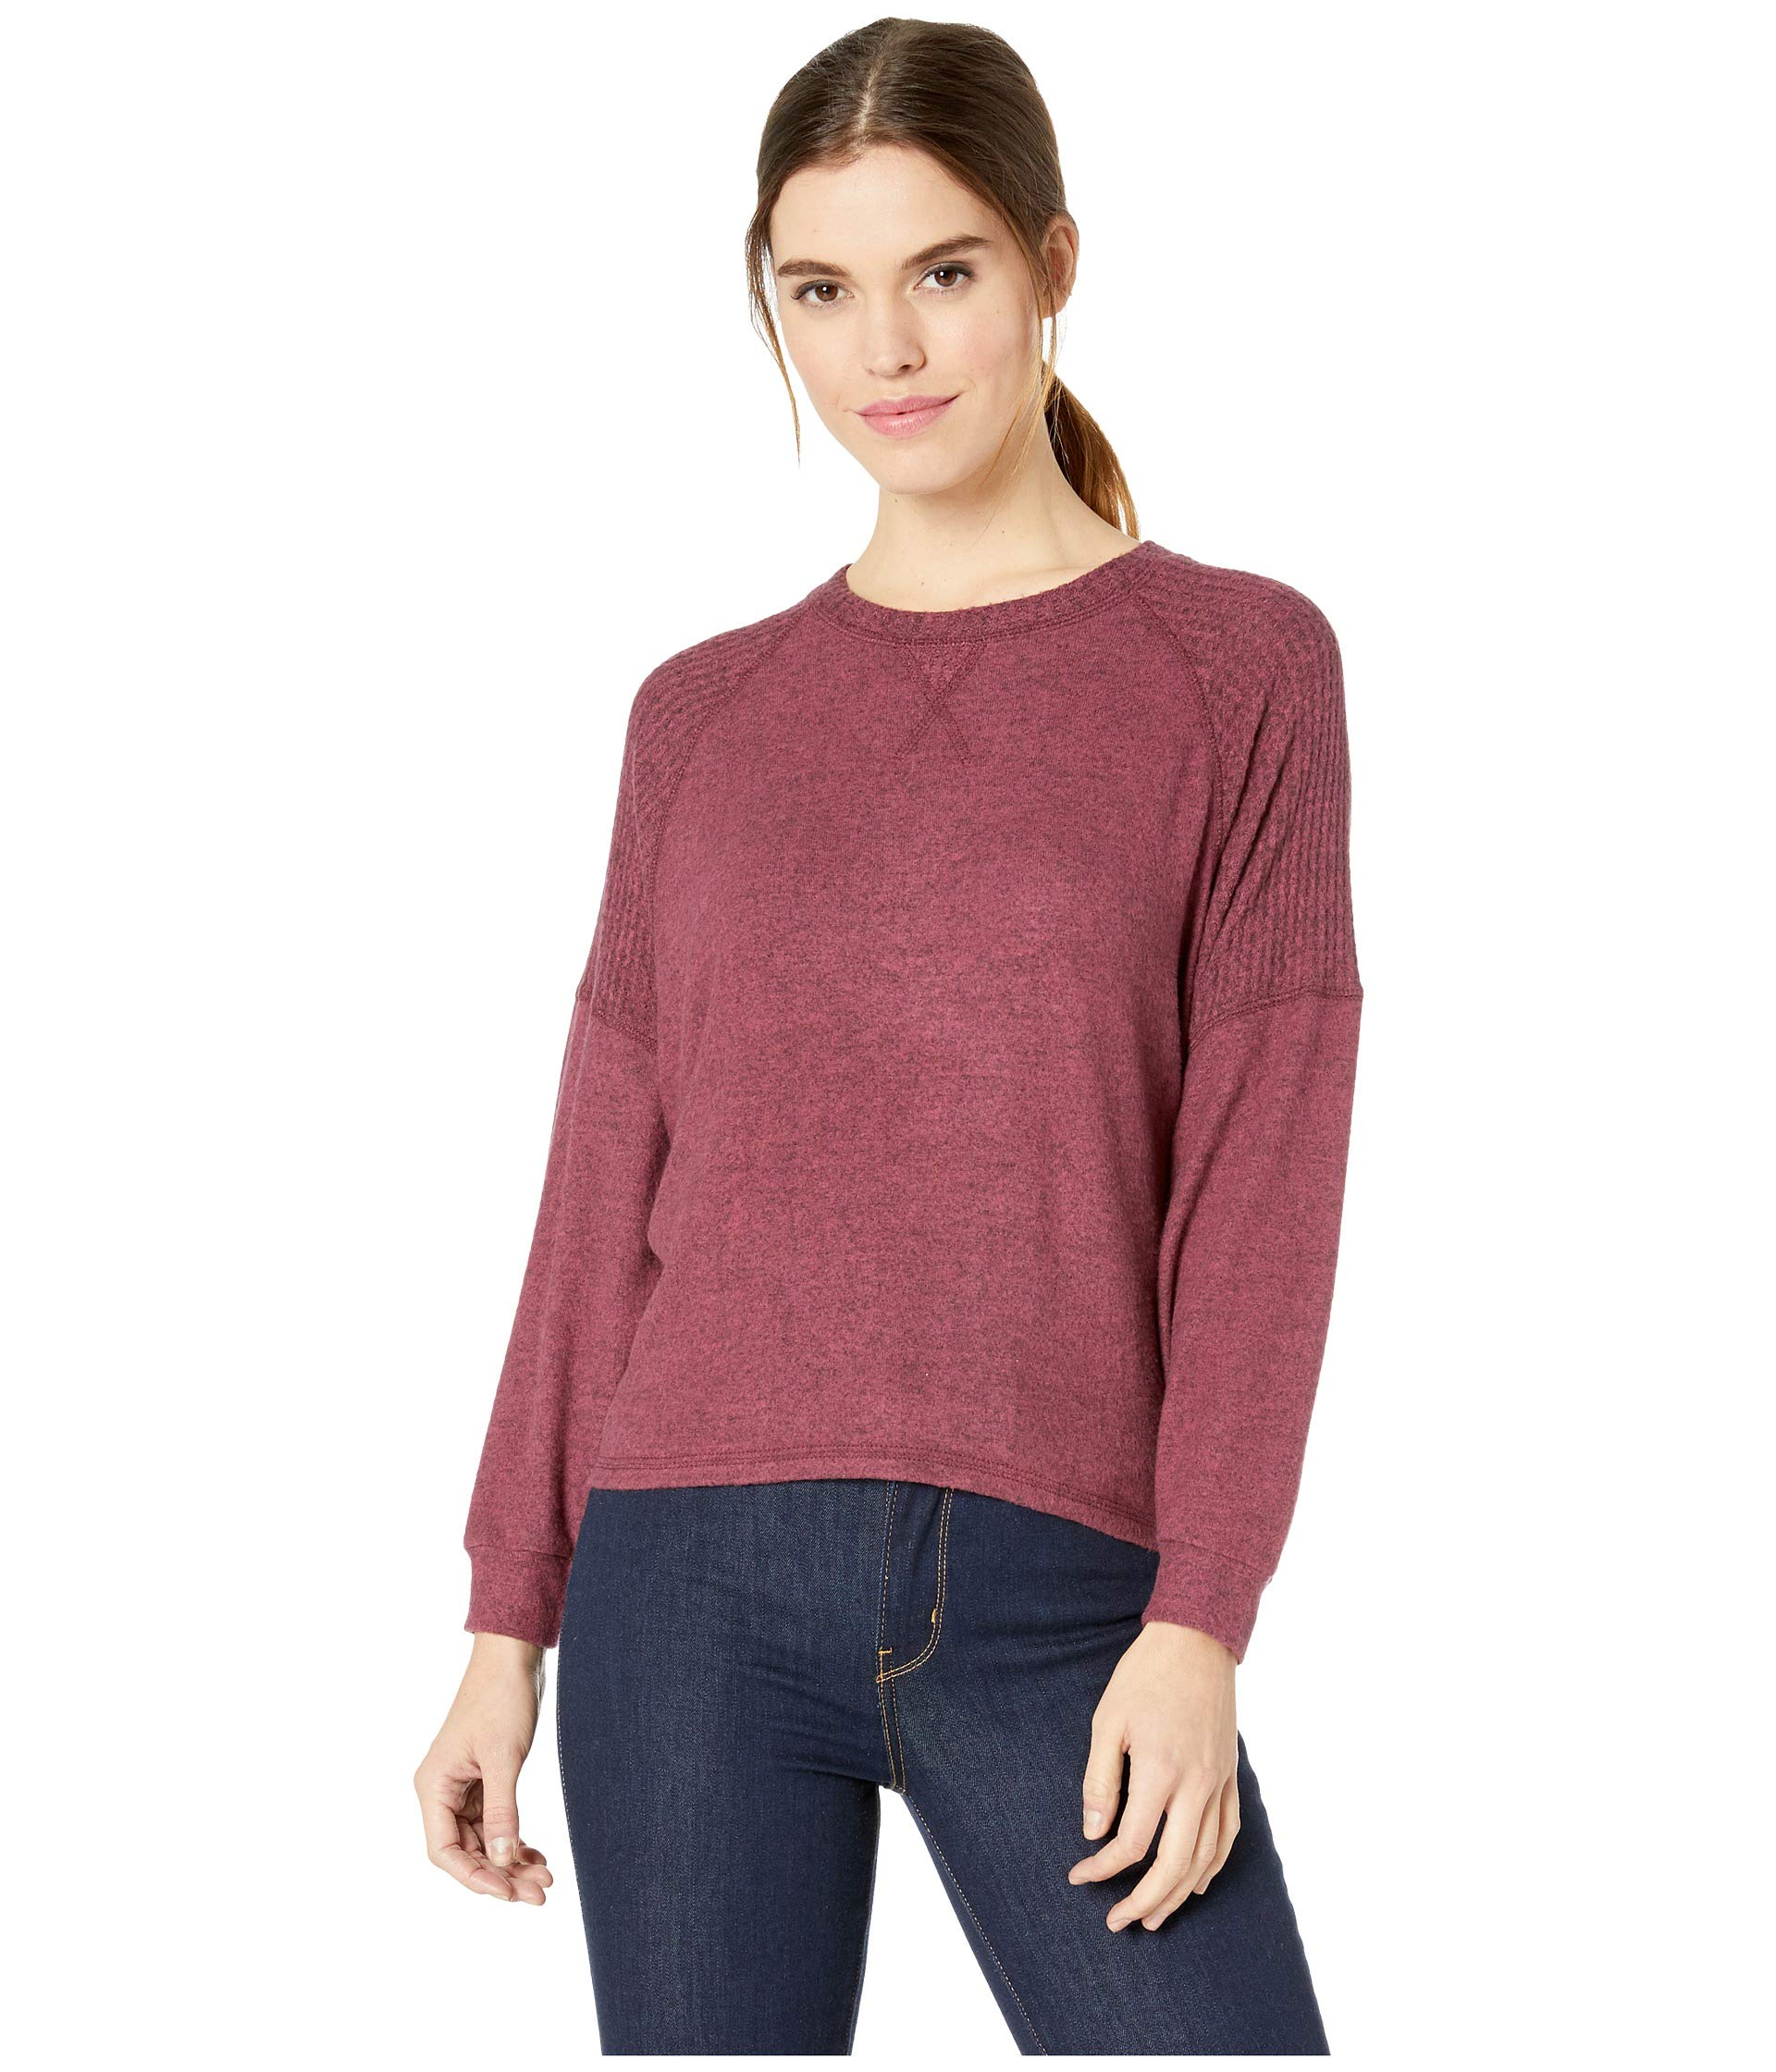 Knit Start Head Top Billabong Cranberry E4qwq